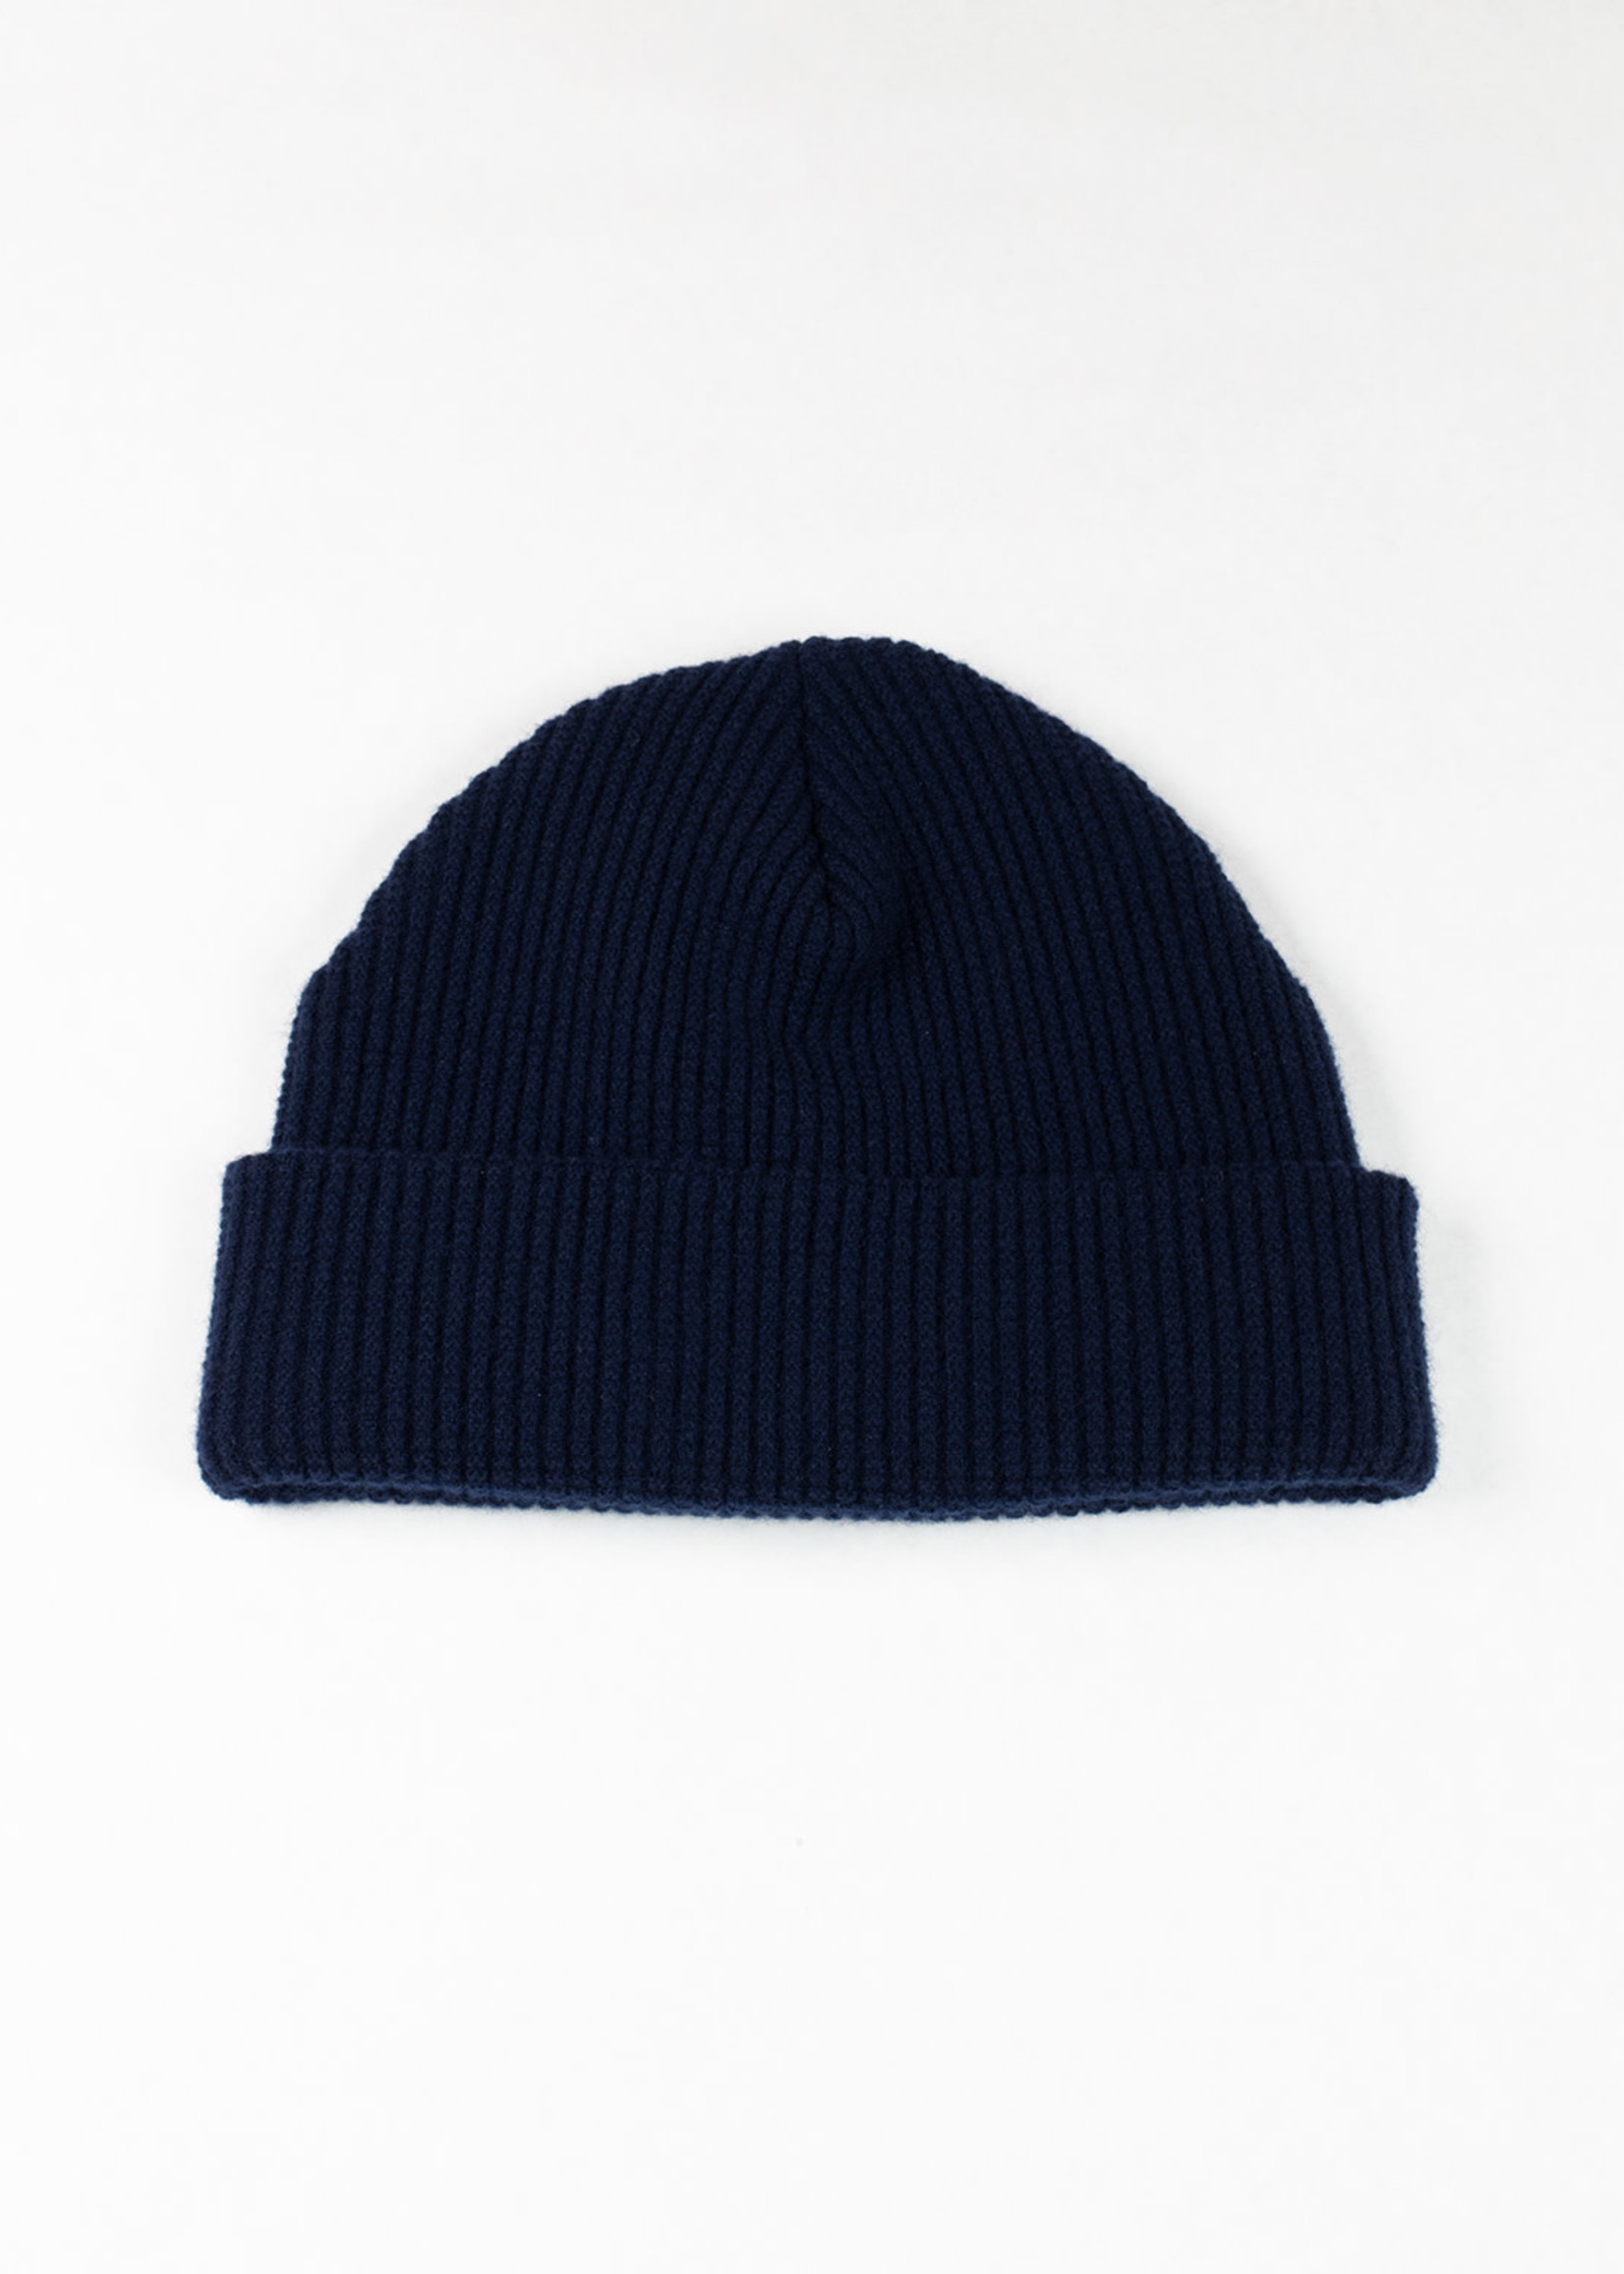 Wool/Cashmere Waffle Cap  Navy by Cableami